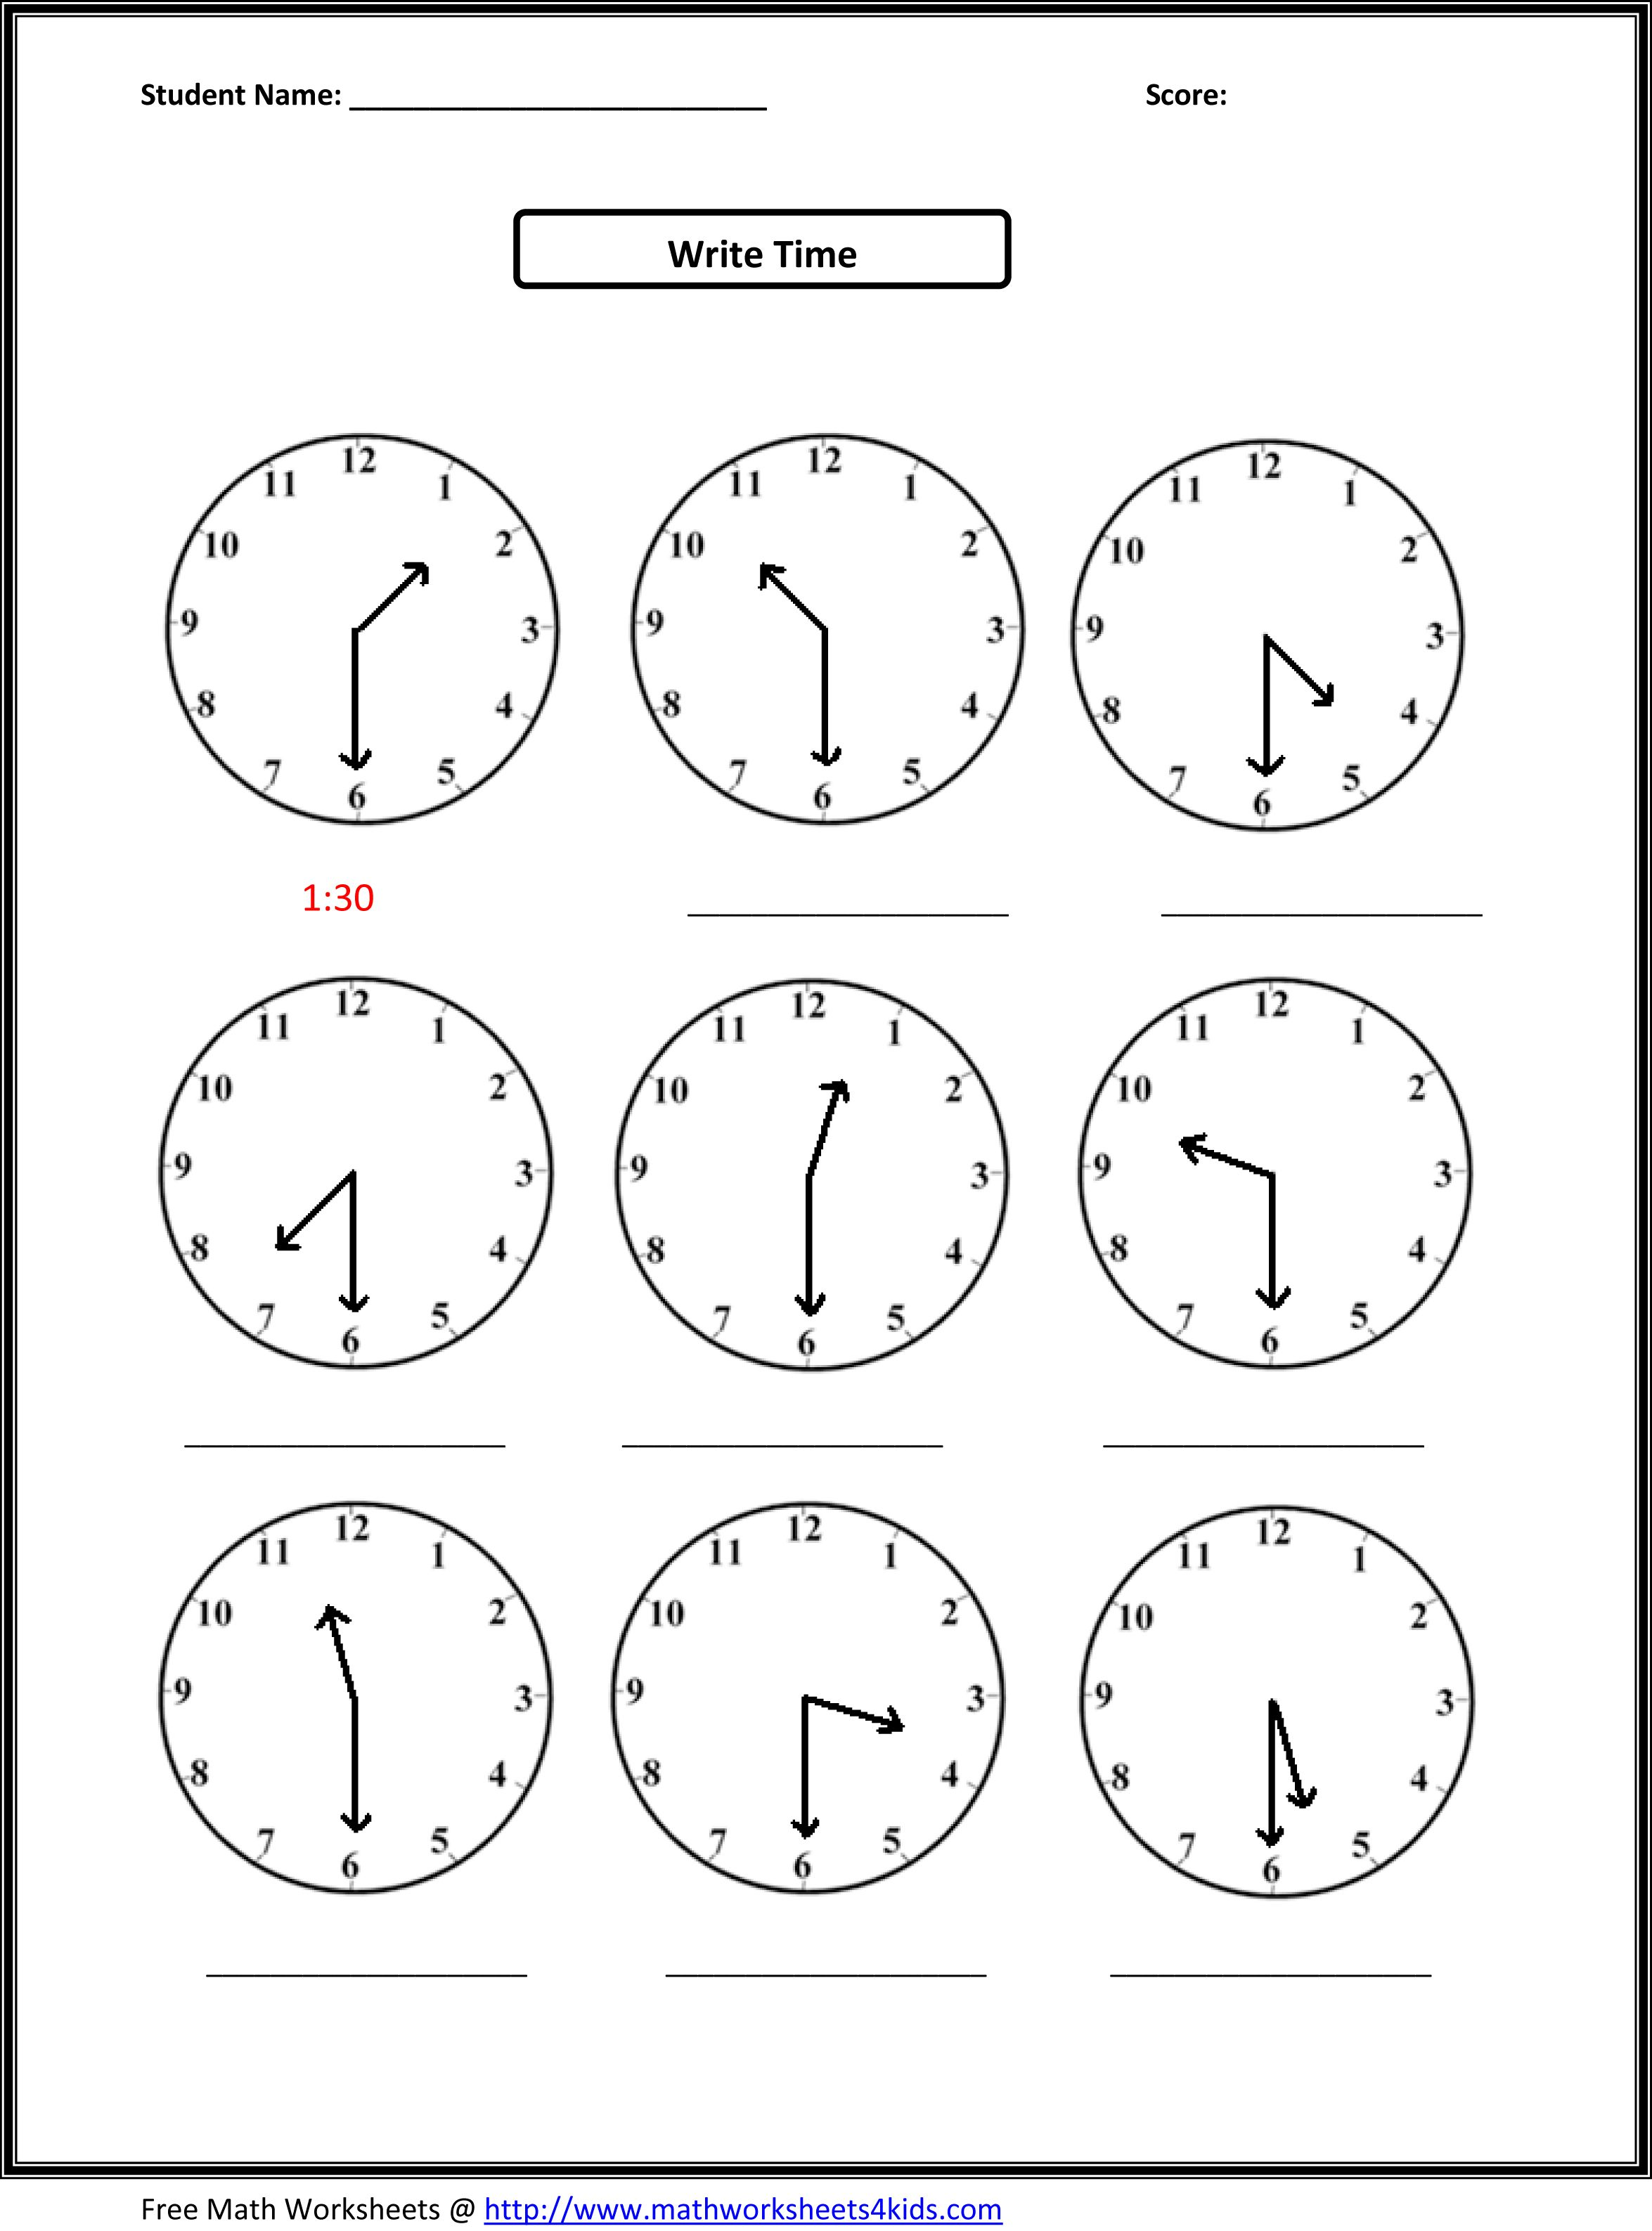 Weirdmailus  Outstanding Worksheet On Time For Grade   Reocurent With Luxury Free Printable Telling Time Worksheets Nd Grade  Reocurent With Captivating Geometry Reflection Worksheet Also Step One Aa Worksheet In Addition The Inner Planets Worksheet And Addition Worksheet For Kindergarten As Well As Life Skills Worksheets Free Additionally Budget Plan Worksheet From Reocurentcom With Weirdmailus  Luxury Worksheet On Time For Grade   Reocurent With Captivating Free Printable Telling Time Worksheets Nd Grade  Reocurent And Outstanding Geometry Reflection Worksheet Also Step One Aa Worksheet In Addition The Inner Planets Worksheet From Reocurentcom